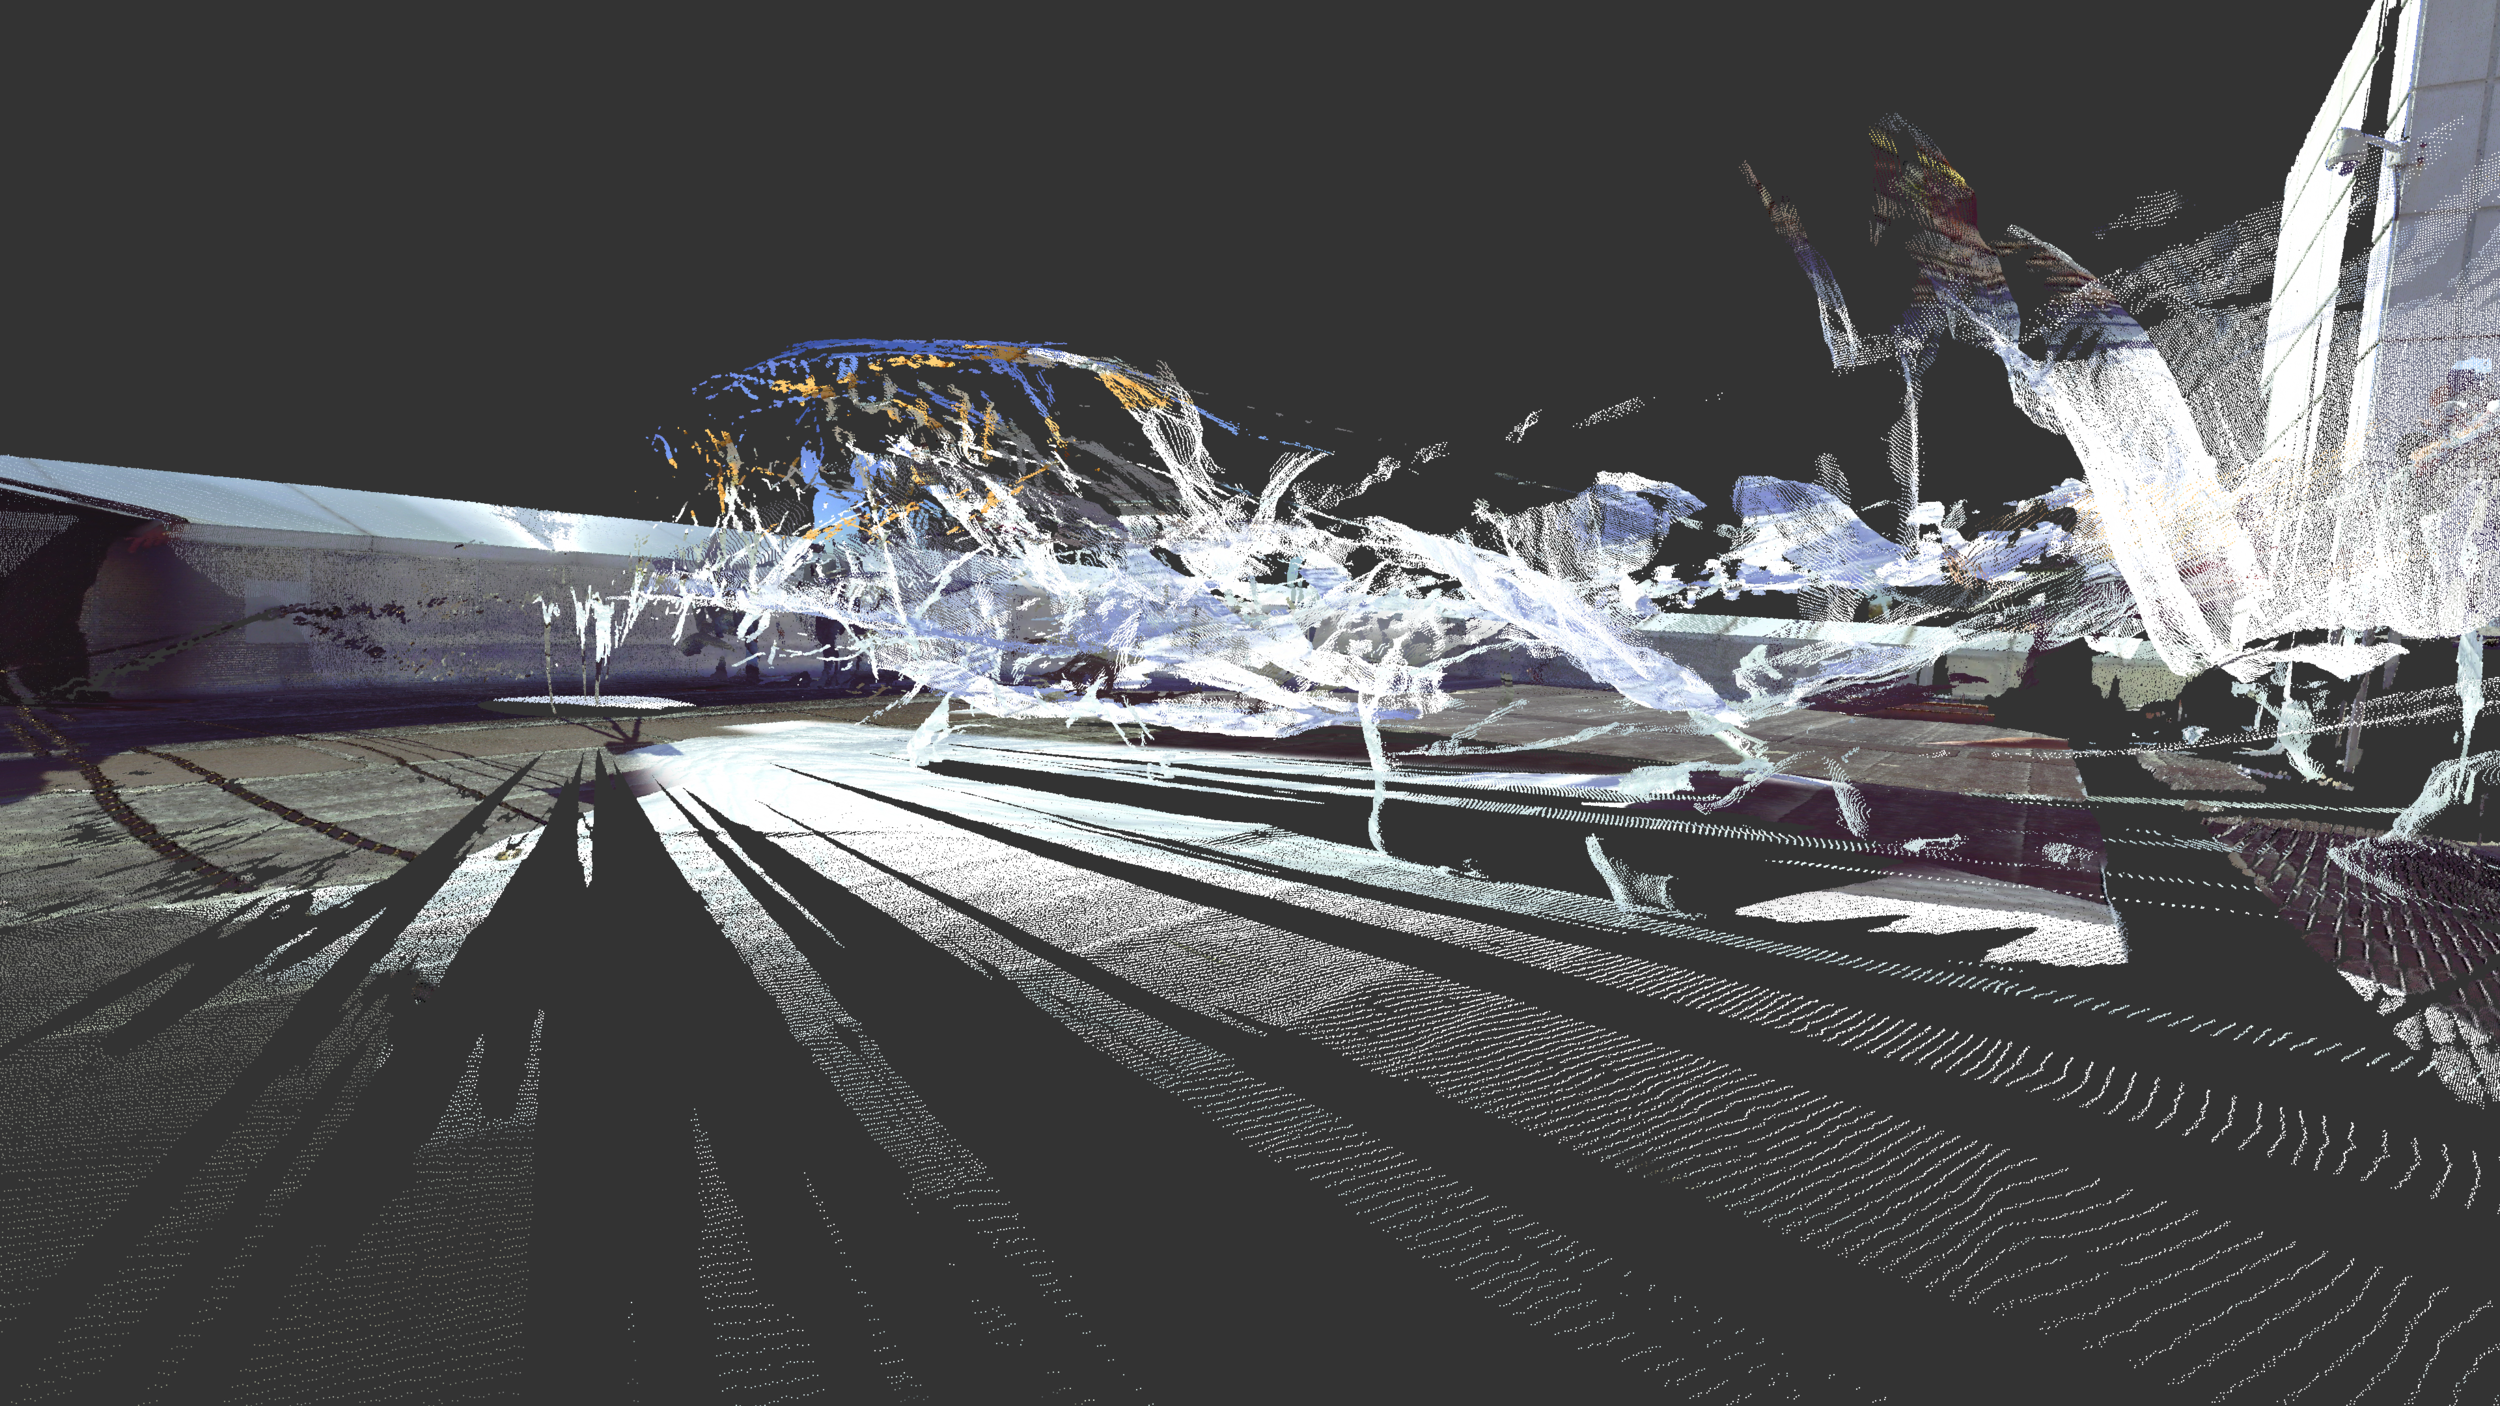 CIty-College-New-York-CUNY-Concrete-Break-3D-laser-scanning-point-cloud-new-york-5.png